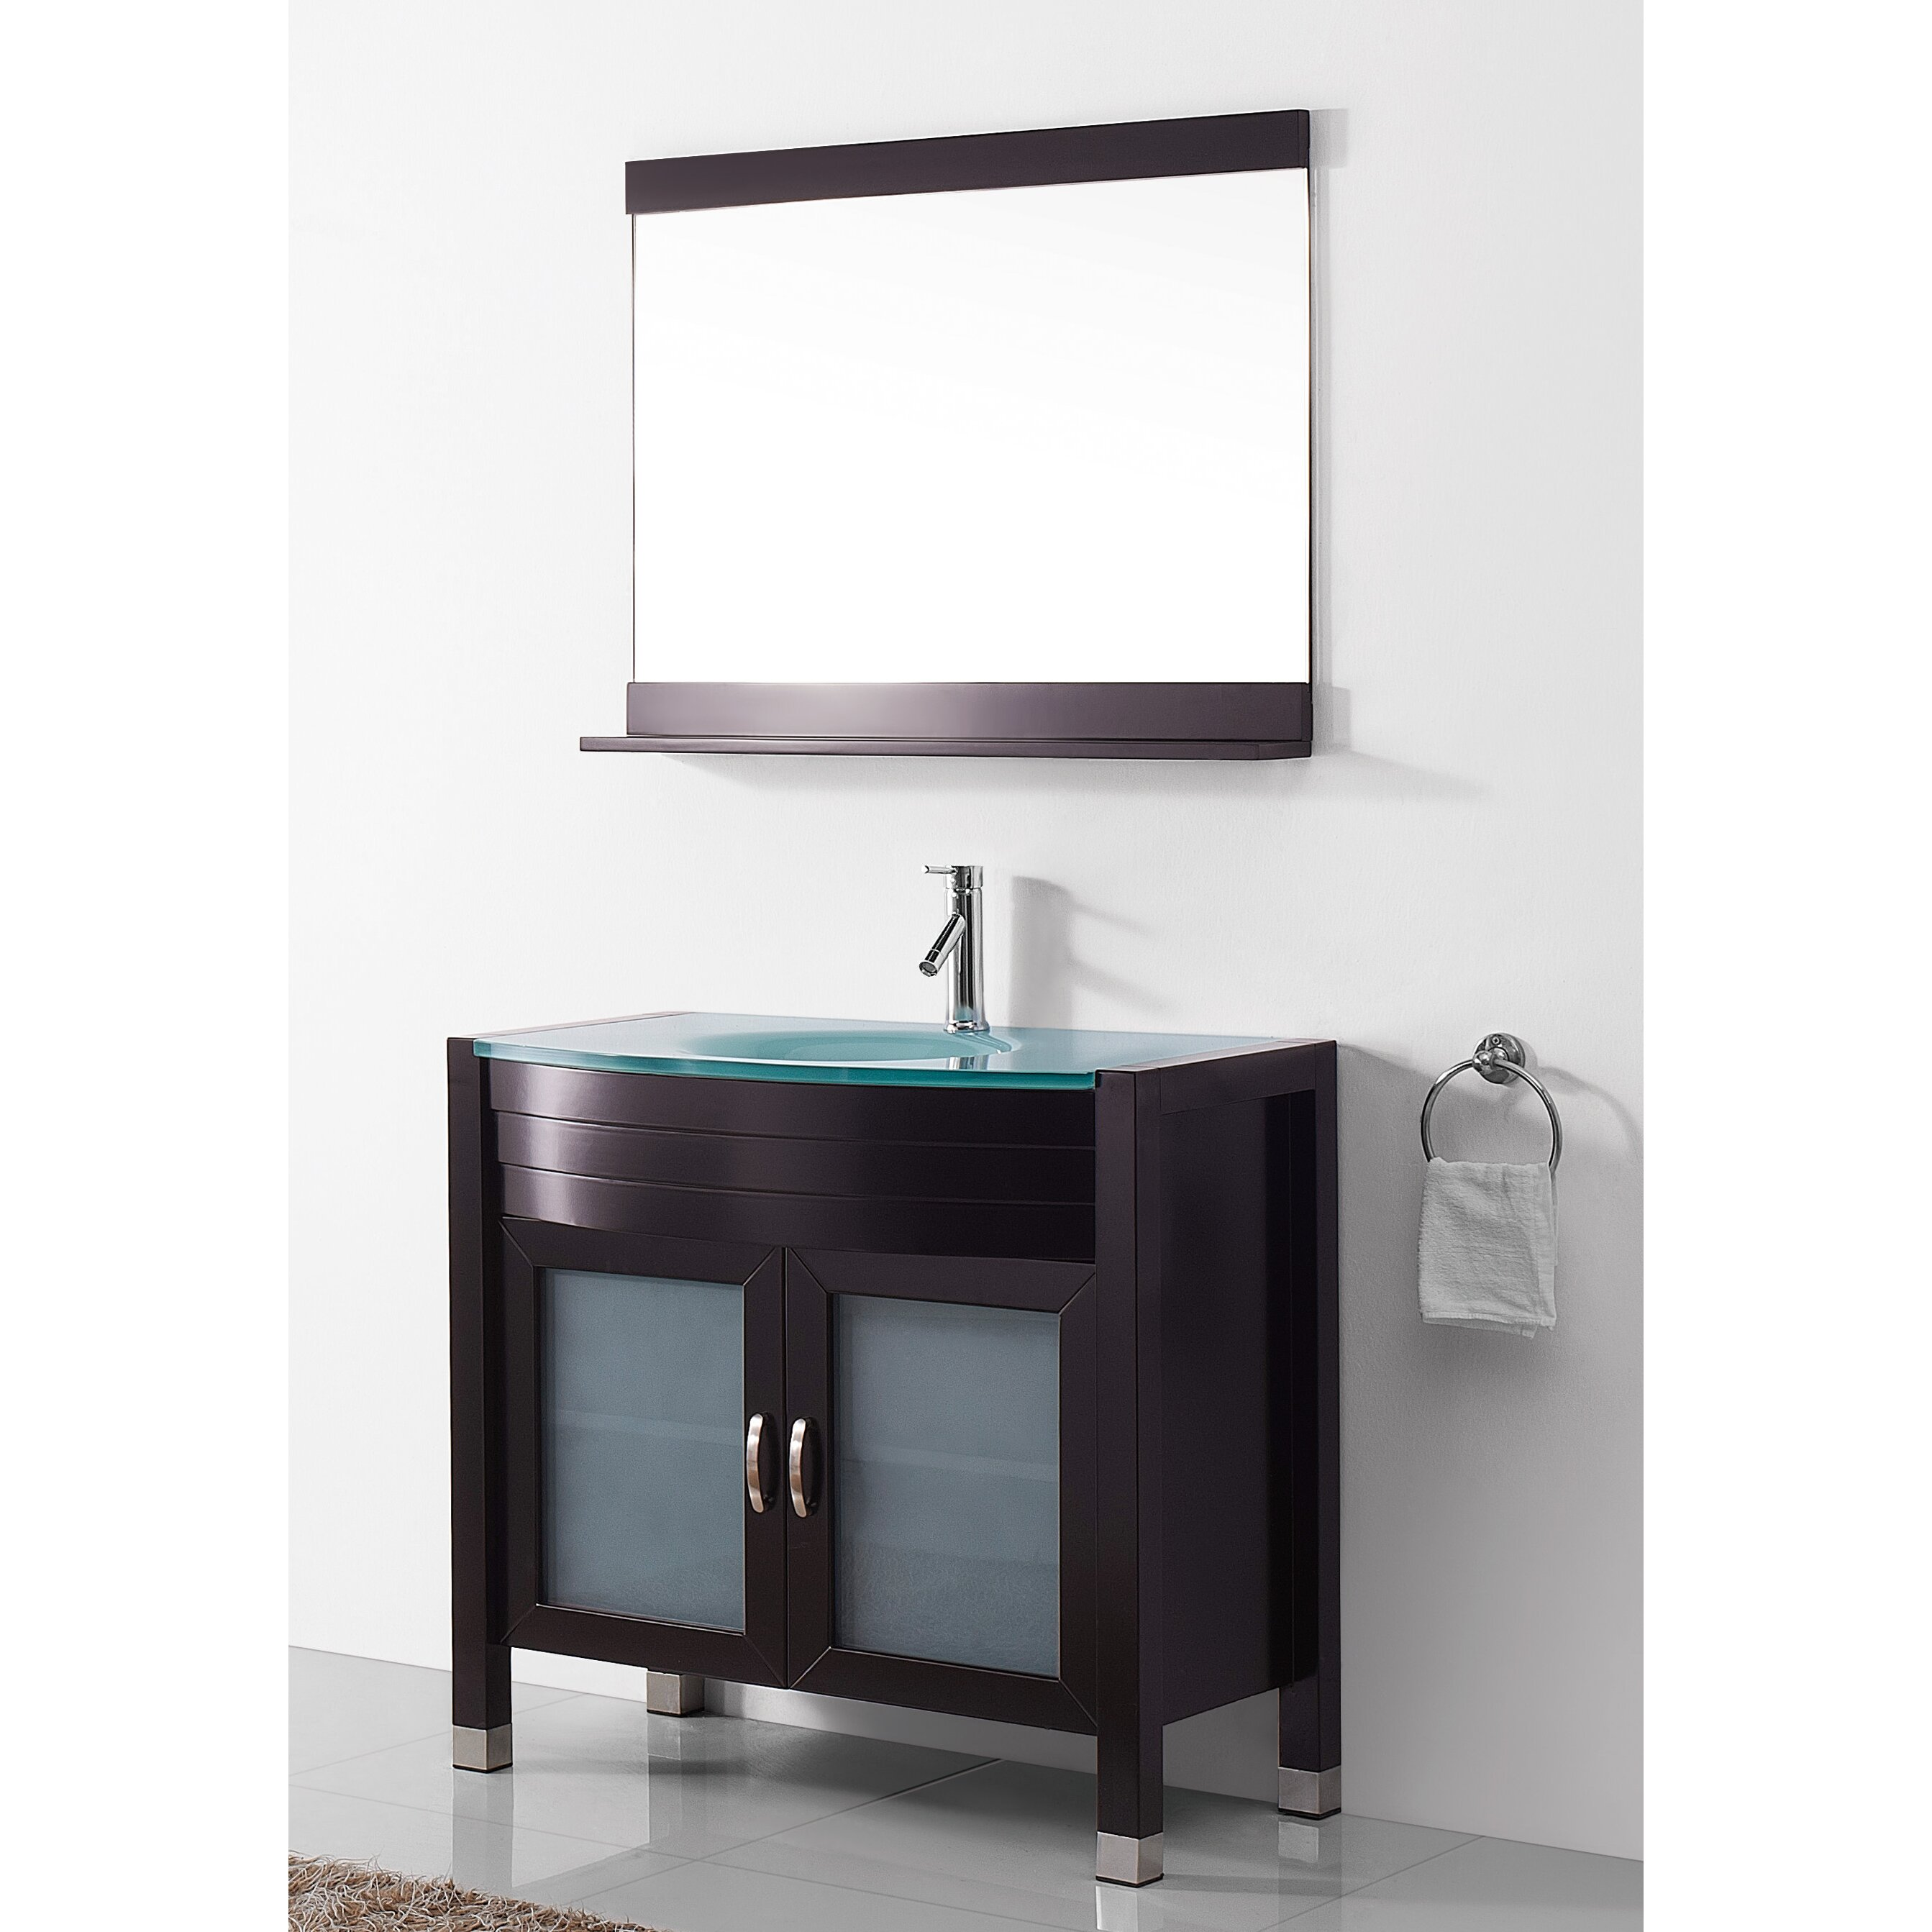 Lastest Virtu Ultra Modern Series 59quot Double Bathroom Vanity Set With Mirror